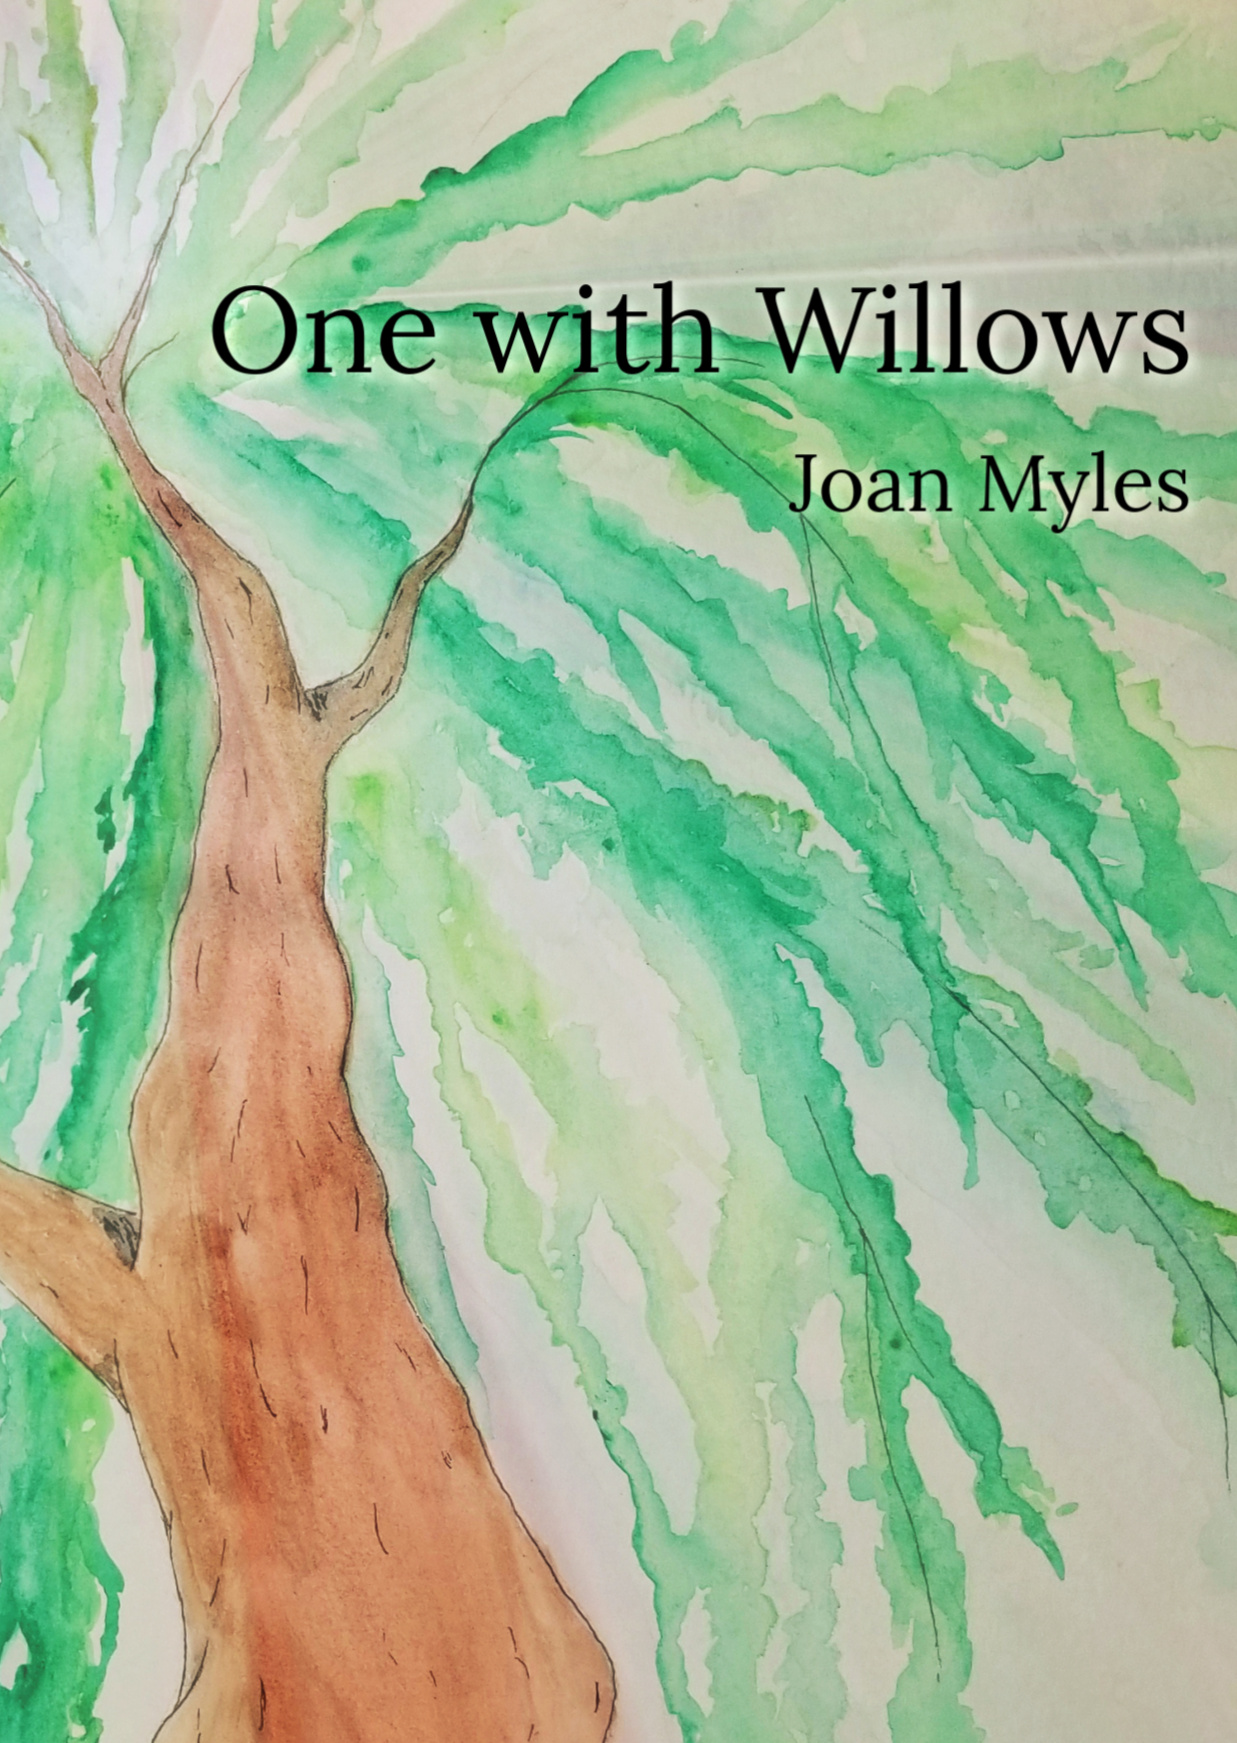 "Pictured: the front cover of ""One with Willows"" by Joan Myles. Behind the title text is an abstract watercolor painting of the boughs of a willow tree."